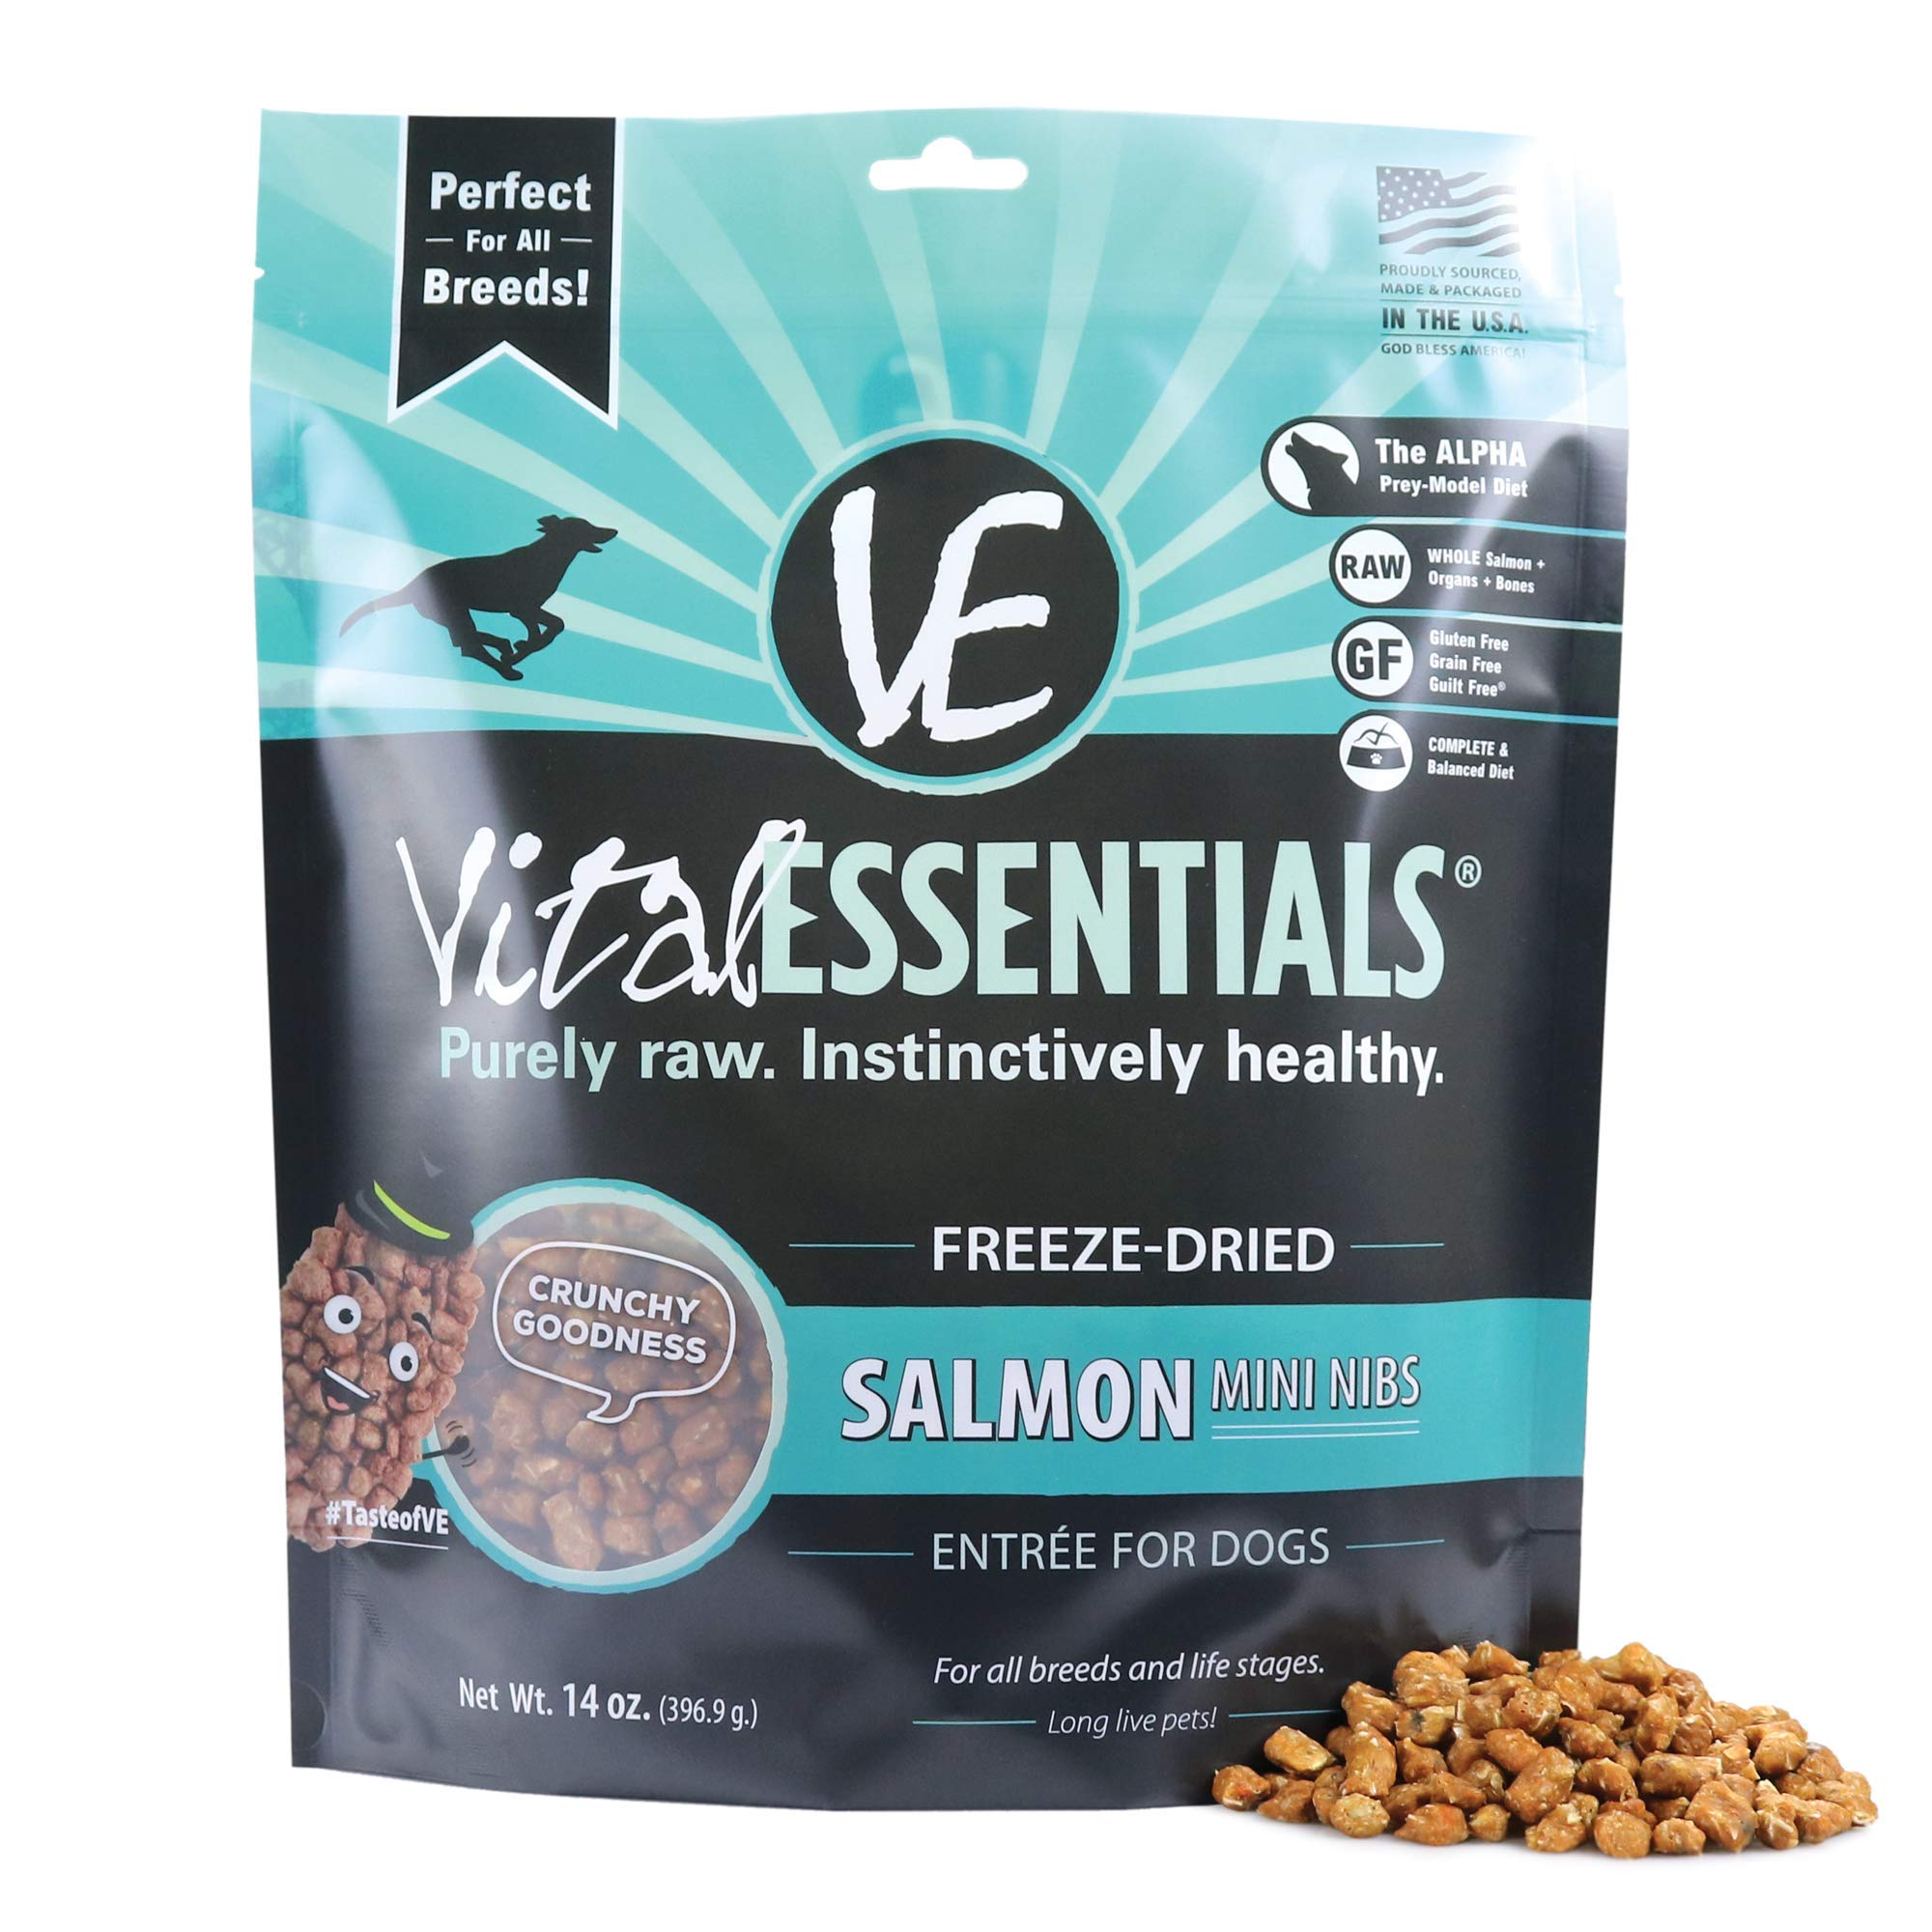 Vital Essentials Freeze Dried Salmon Dog Food Or Mix-in - Grain Free - Hypoallergenic - Omega 3 & 6 for Healthy Skin & Coat - 14 oz Resealable Bag by Vital Essentials